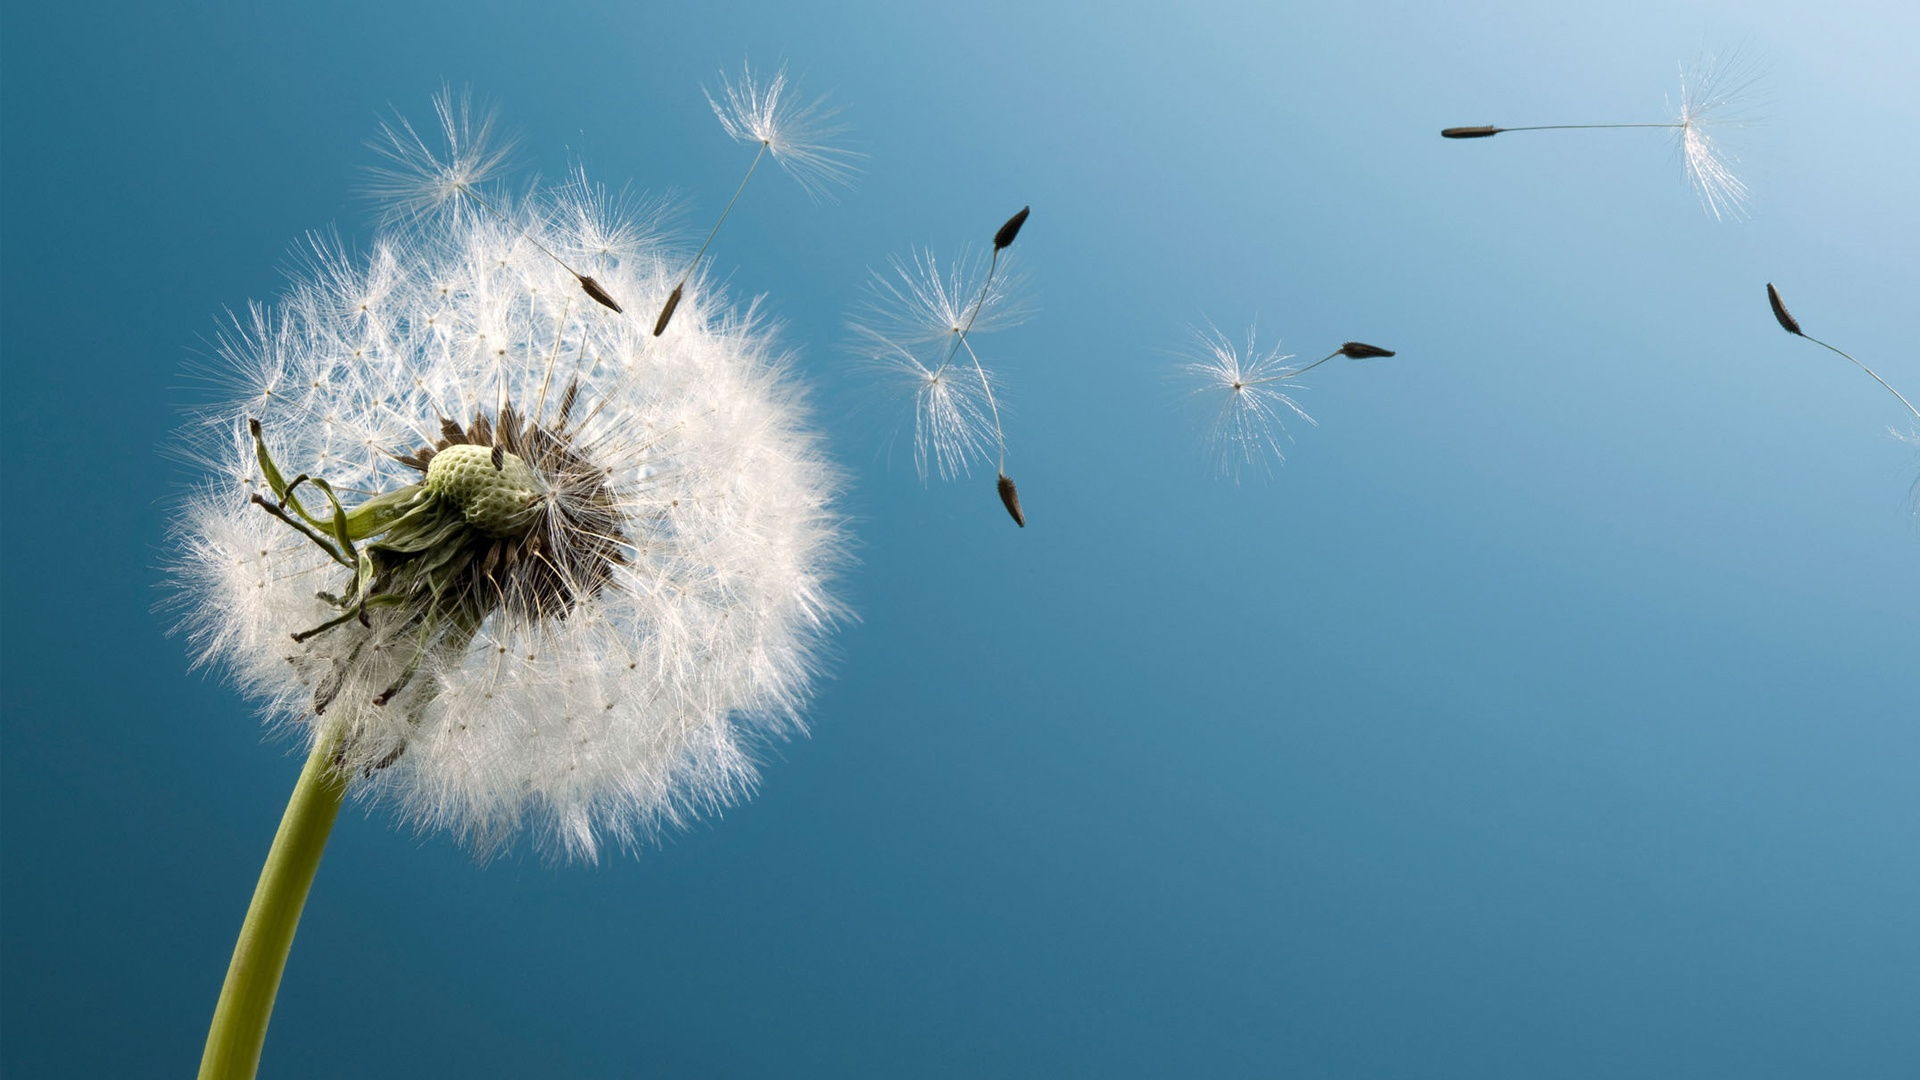 Blown-dandelion-1920x1080-HD-From-Gallsource-com-wallpaper-wp3603500